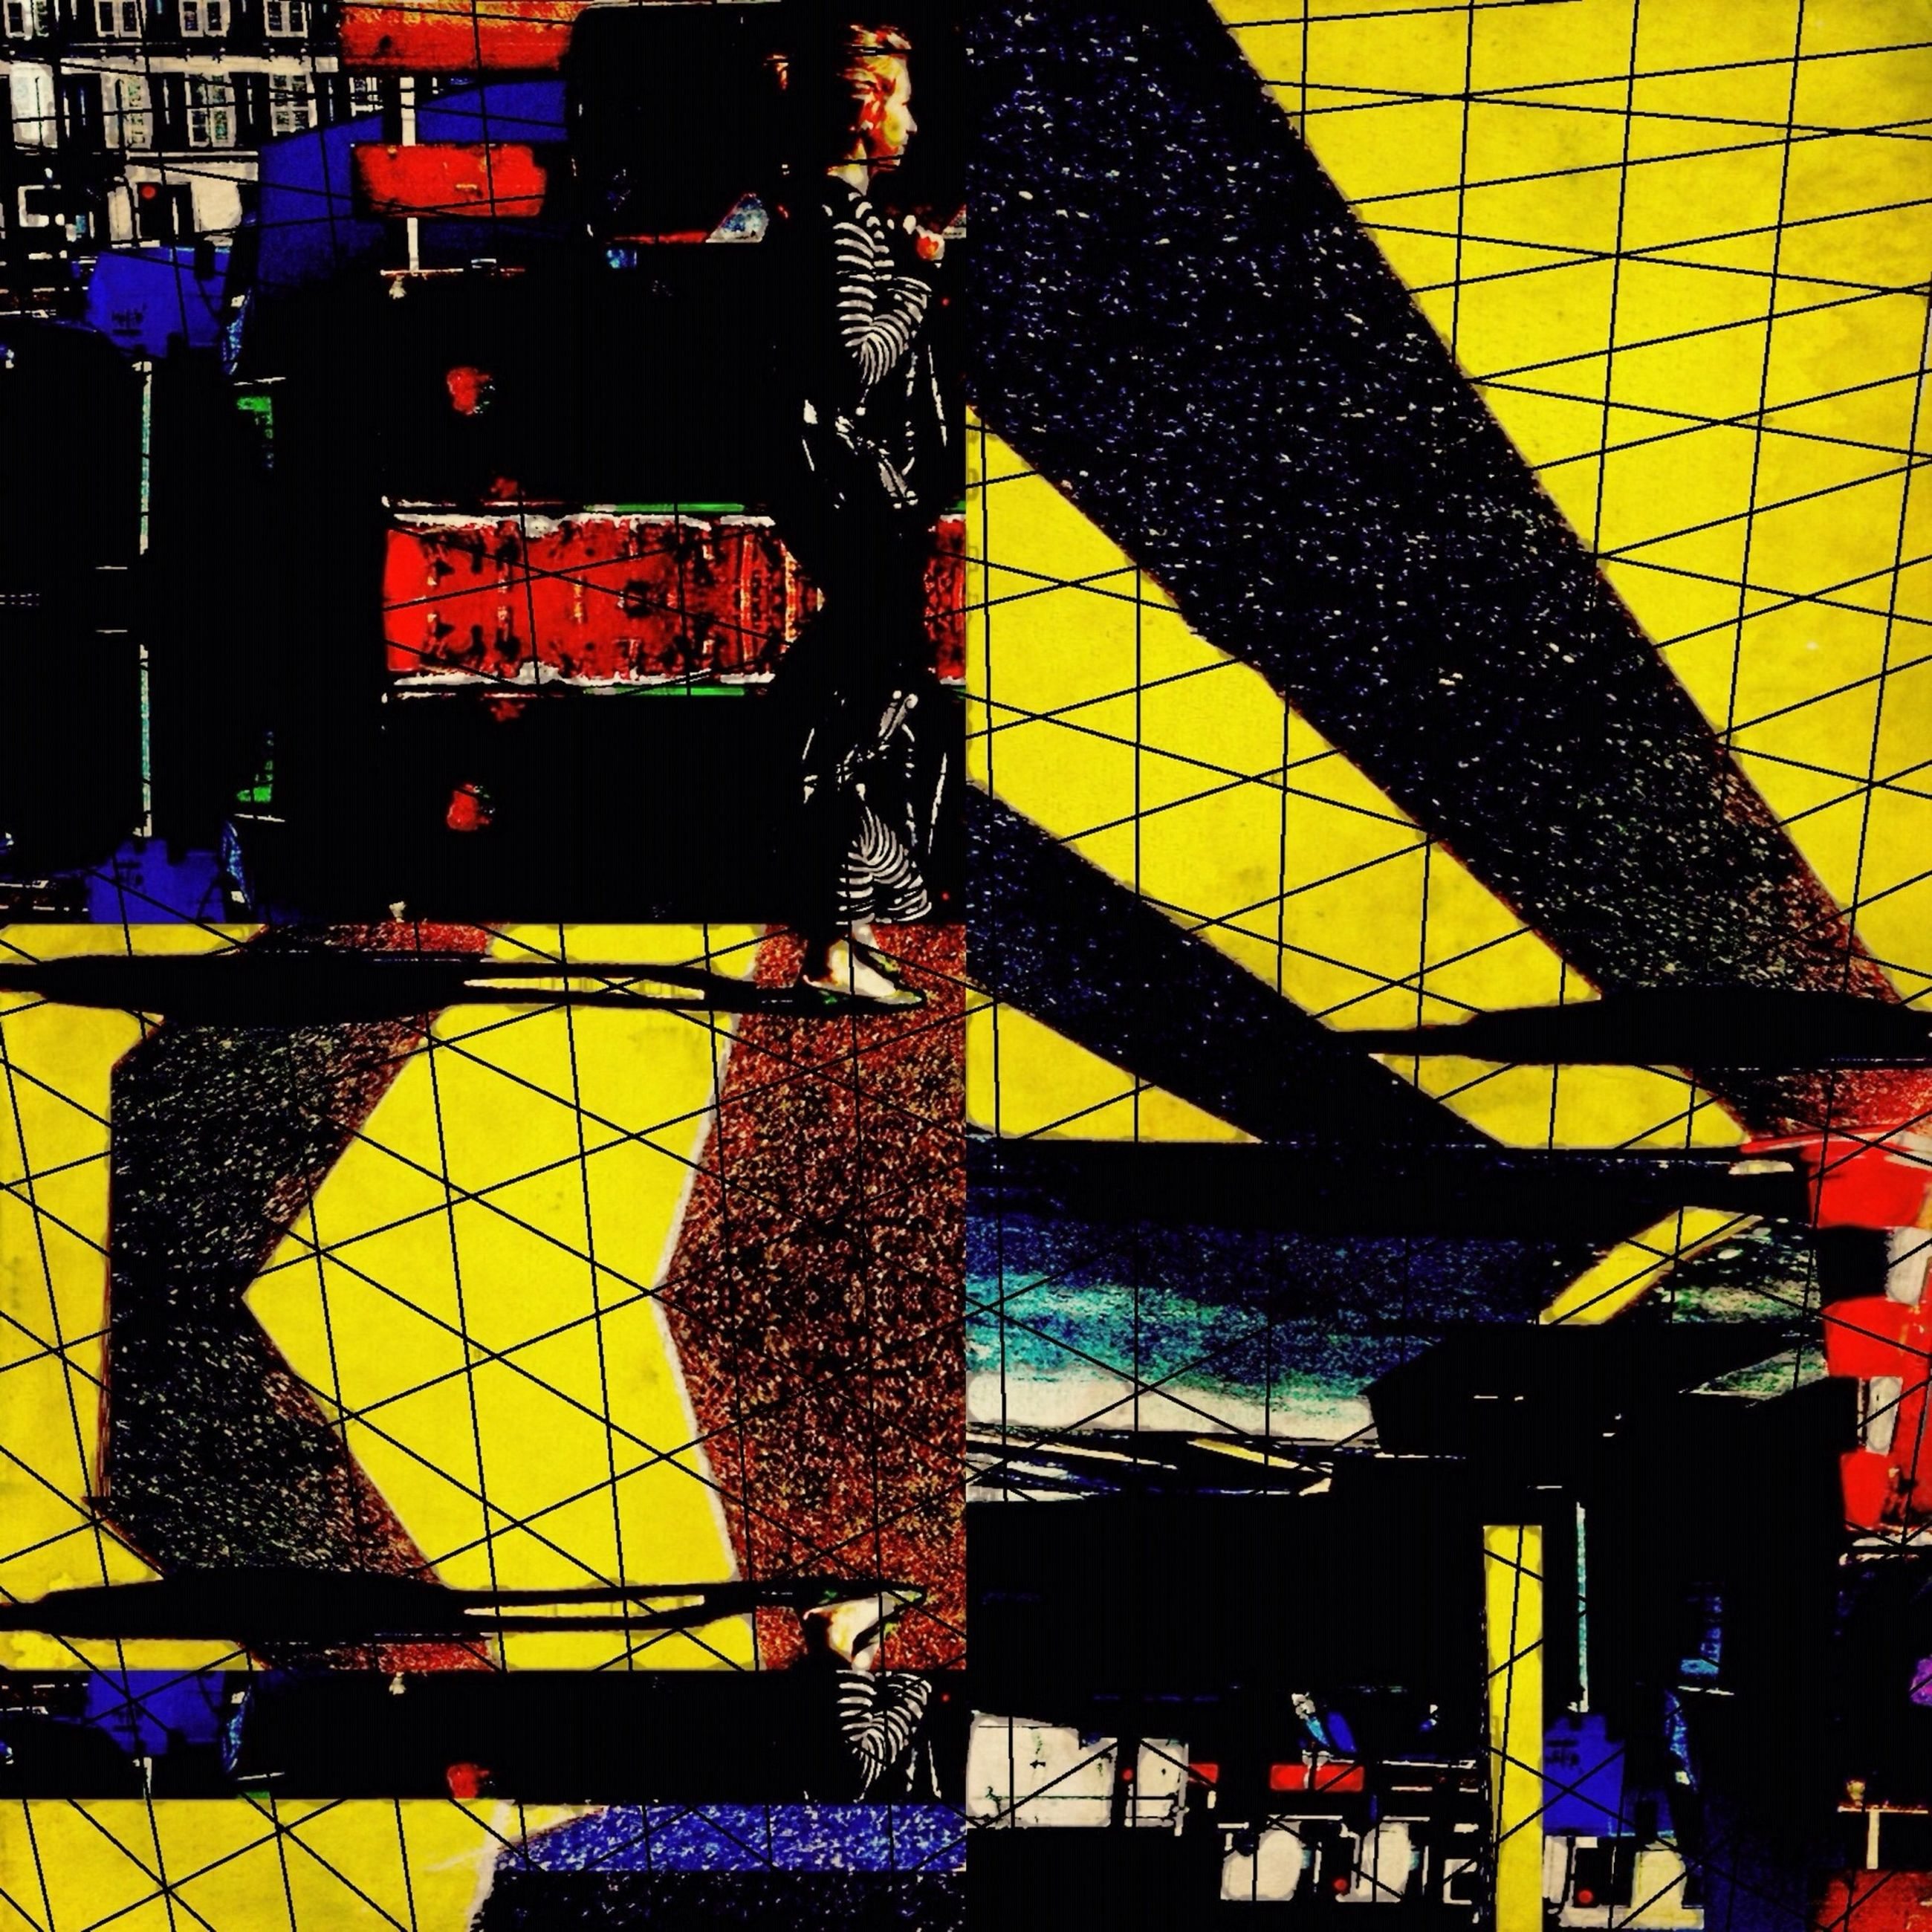 architecture, built structure, building exterior, yellow, multi colored, graffiti, wall - building feature, building, city, outdoors, day, pattern, no people, metal, low angle view, art, communication, residential structure, lighting equipment, text